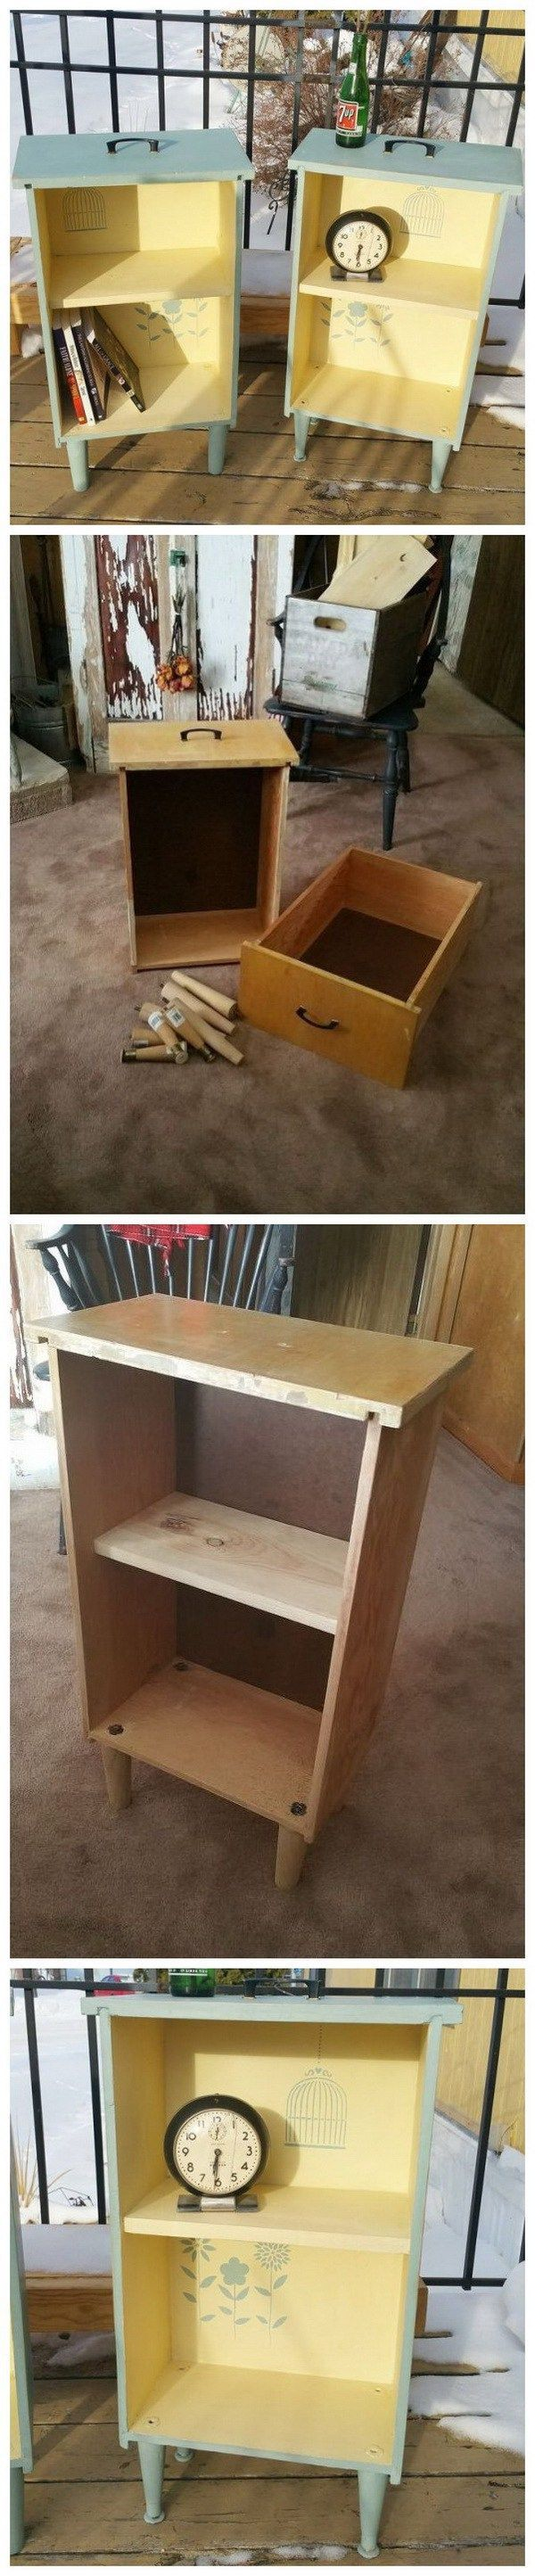 Repurposing Old Furniture 20 diy ideas to reuse old furniture | reuse, diy ideas and repurposed